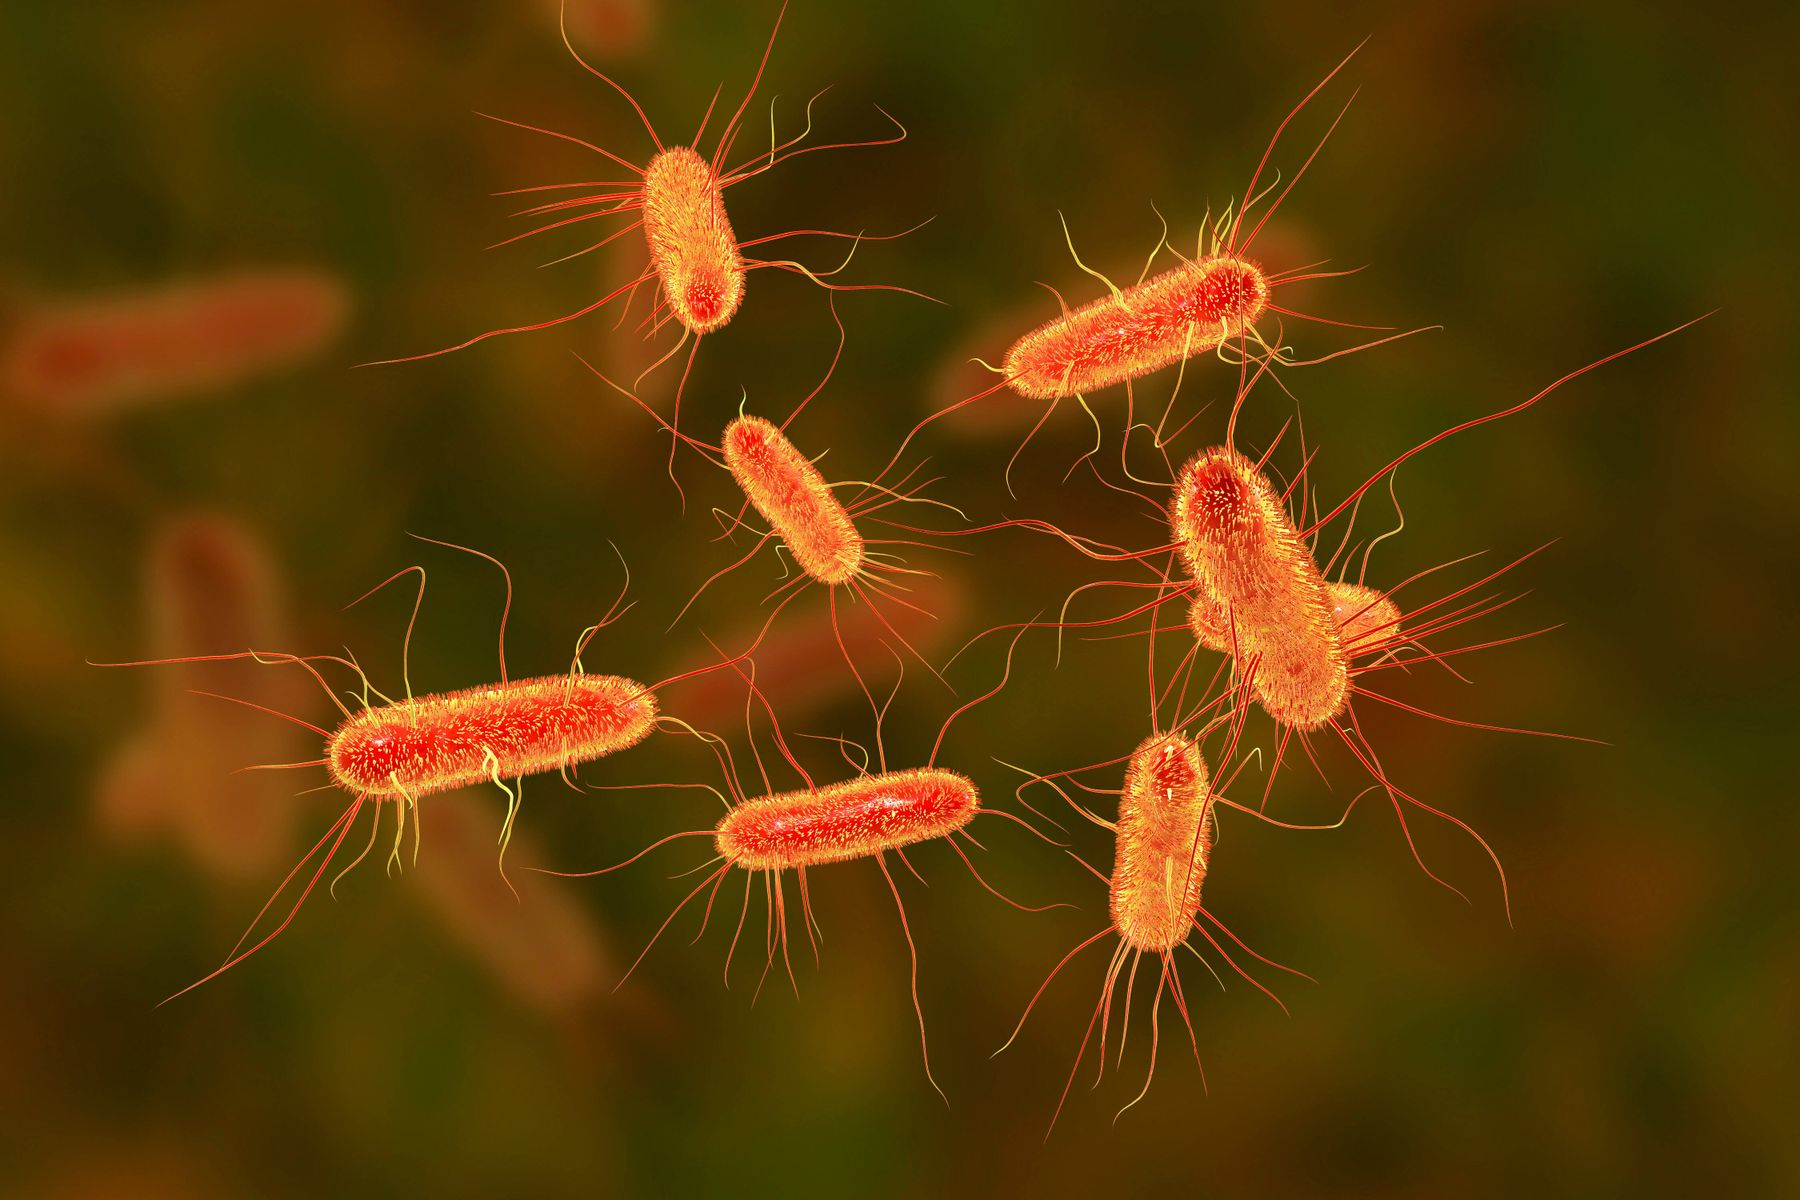 Harmful strain of E. coli